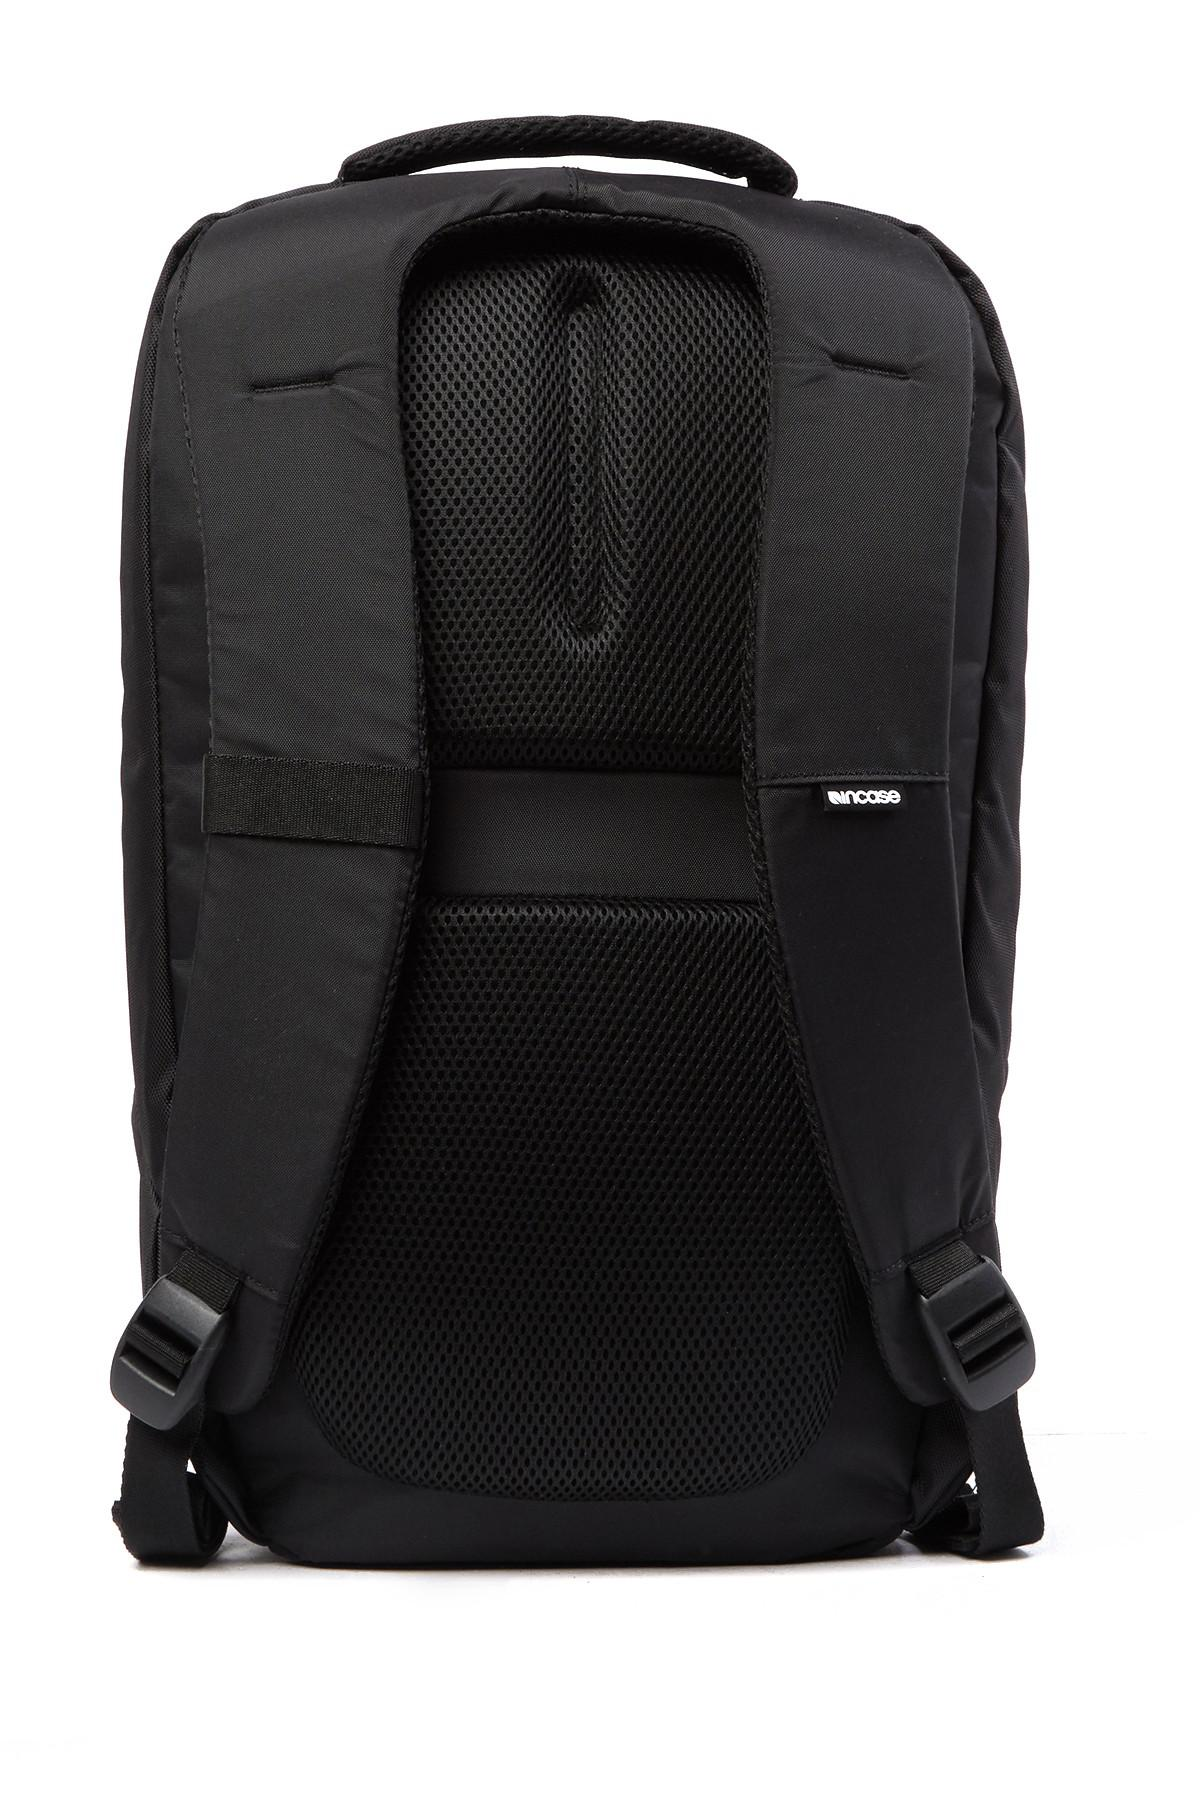 You will the incase nylon backpack to